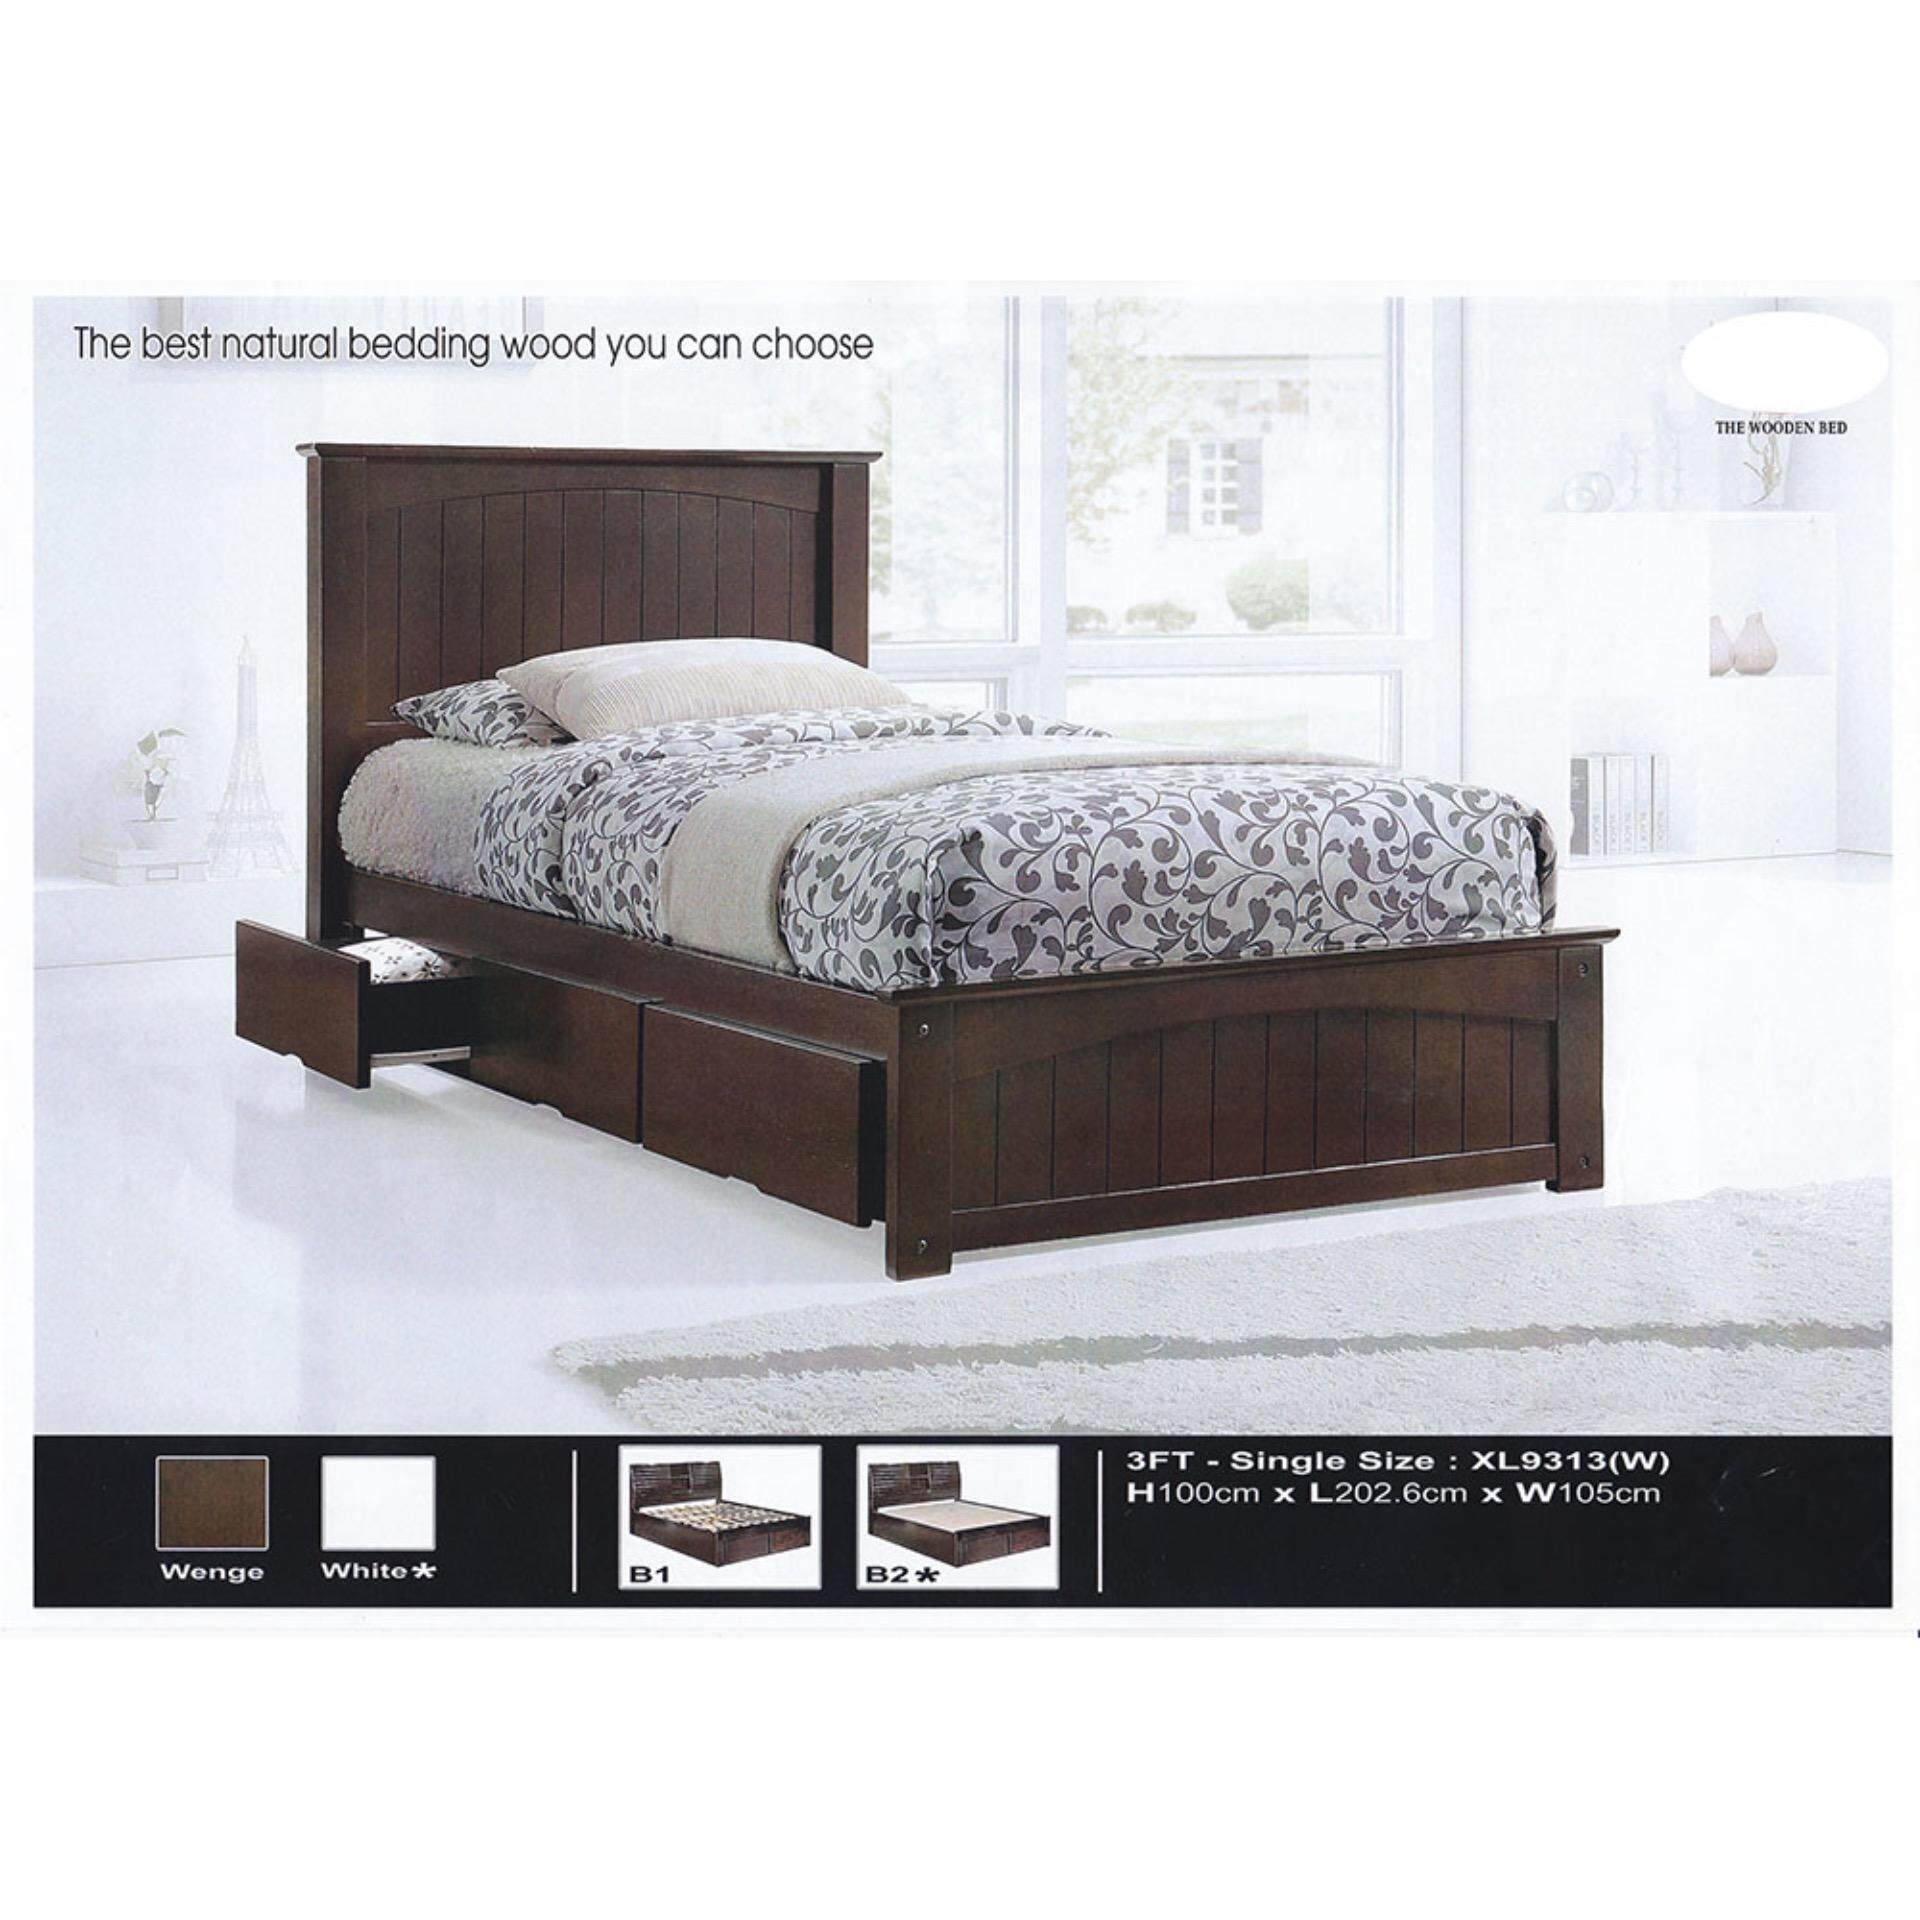 Solid Wood Strong Single Size Wooden Bed With Drawers L2026MM X W105MM X H1000MM Pre-Order 2 Week